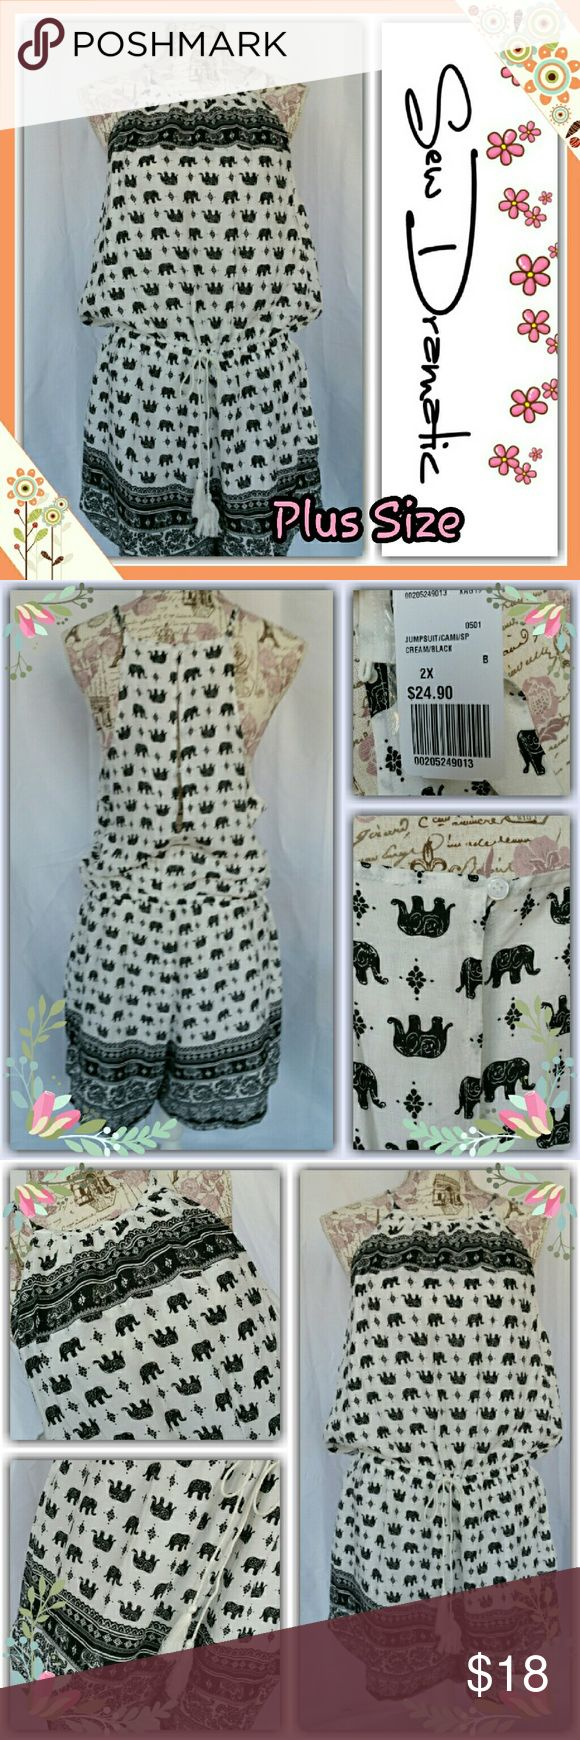 Plus Size Romper Elephant Print Playsuit Cozy plus size playsuit romper with an elephant print design! Romper is lightly lined with a soft cotton blend material.   Adjustable spaghetti straps with buttons down the back.    Forever 21 Plus Size 2X  Romper runs a hair small in the girth (length) most comfortable on a size 1X in my opinion ? and from someone who is a tts 2X it was just a teeny bit uncomfortable in the girth and waist.  I am selling as a 1x Tag reads 2X Forever 21 Pants…